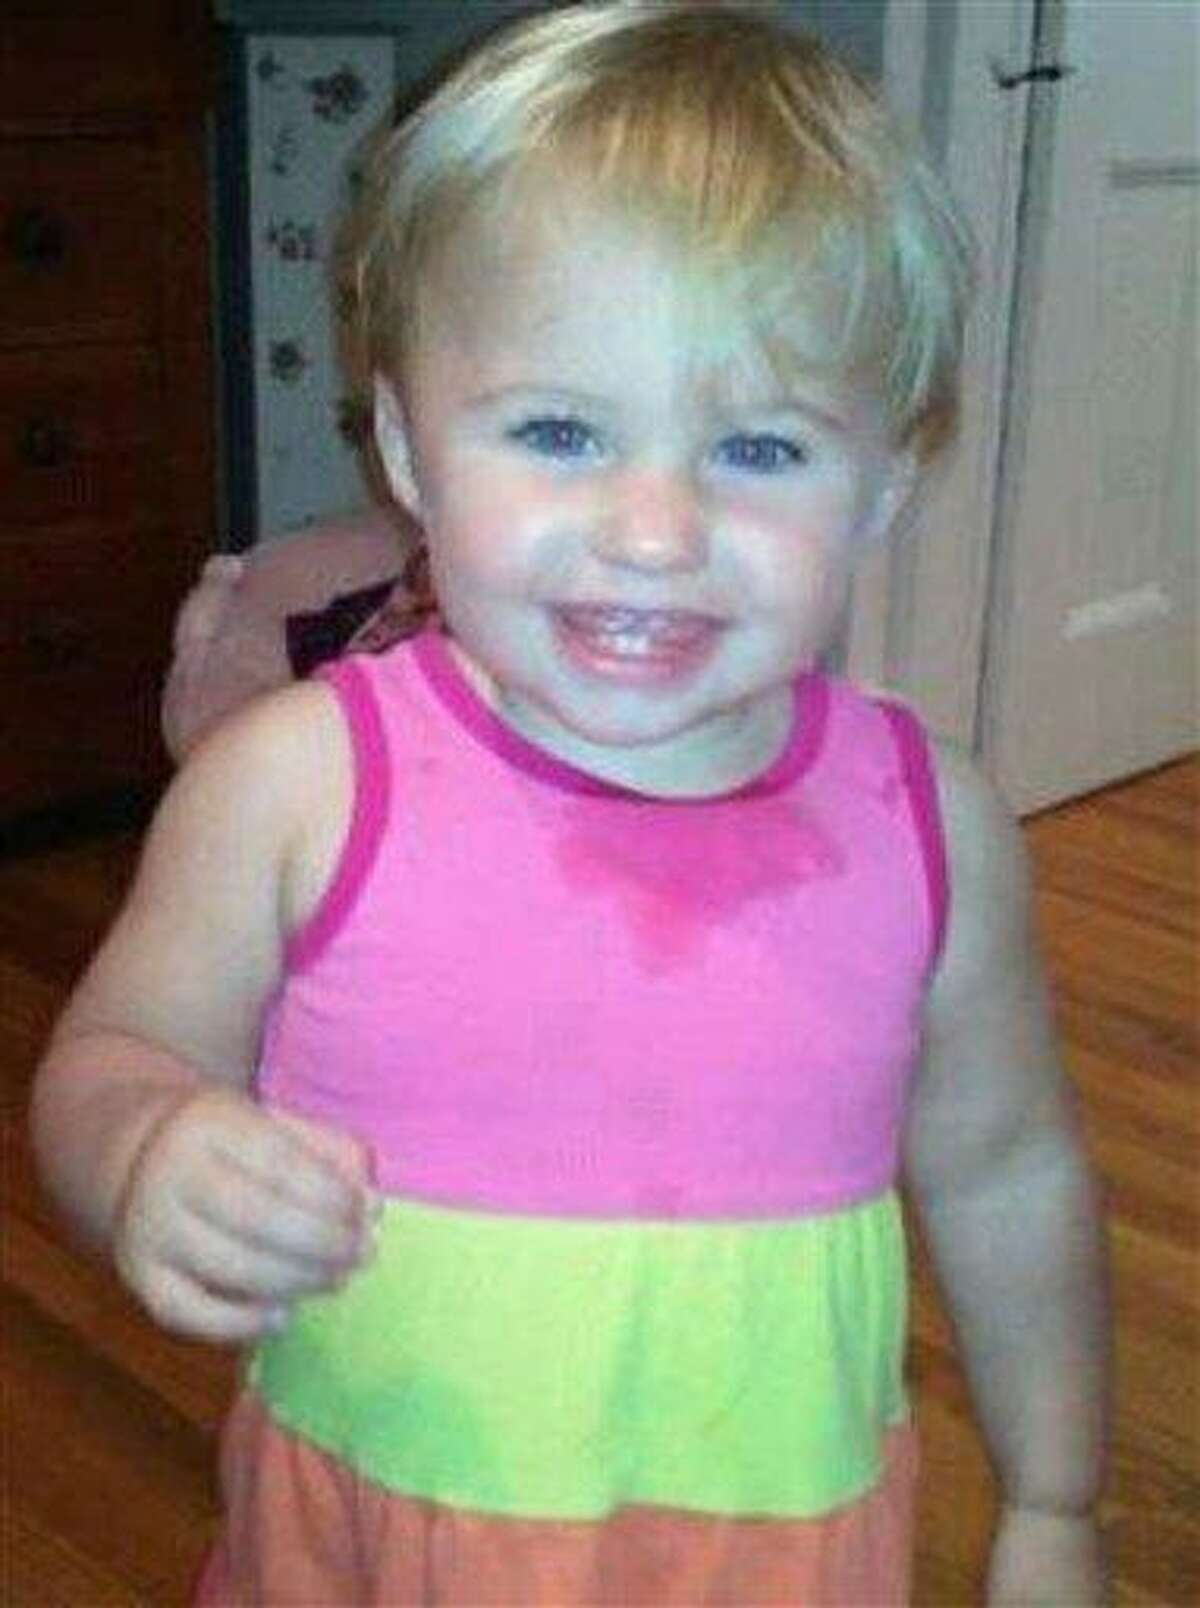 This undated file photo obtained from a Facebook page shows missing toddler Ayla Reynolds. Investigators said Sunday that some of the blood found in the Maine home where Ayla was last seen on Dec. 17 belonged to the little girl. Associated Press